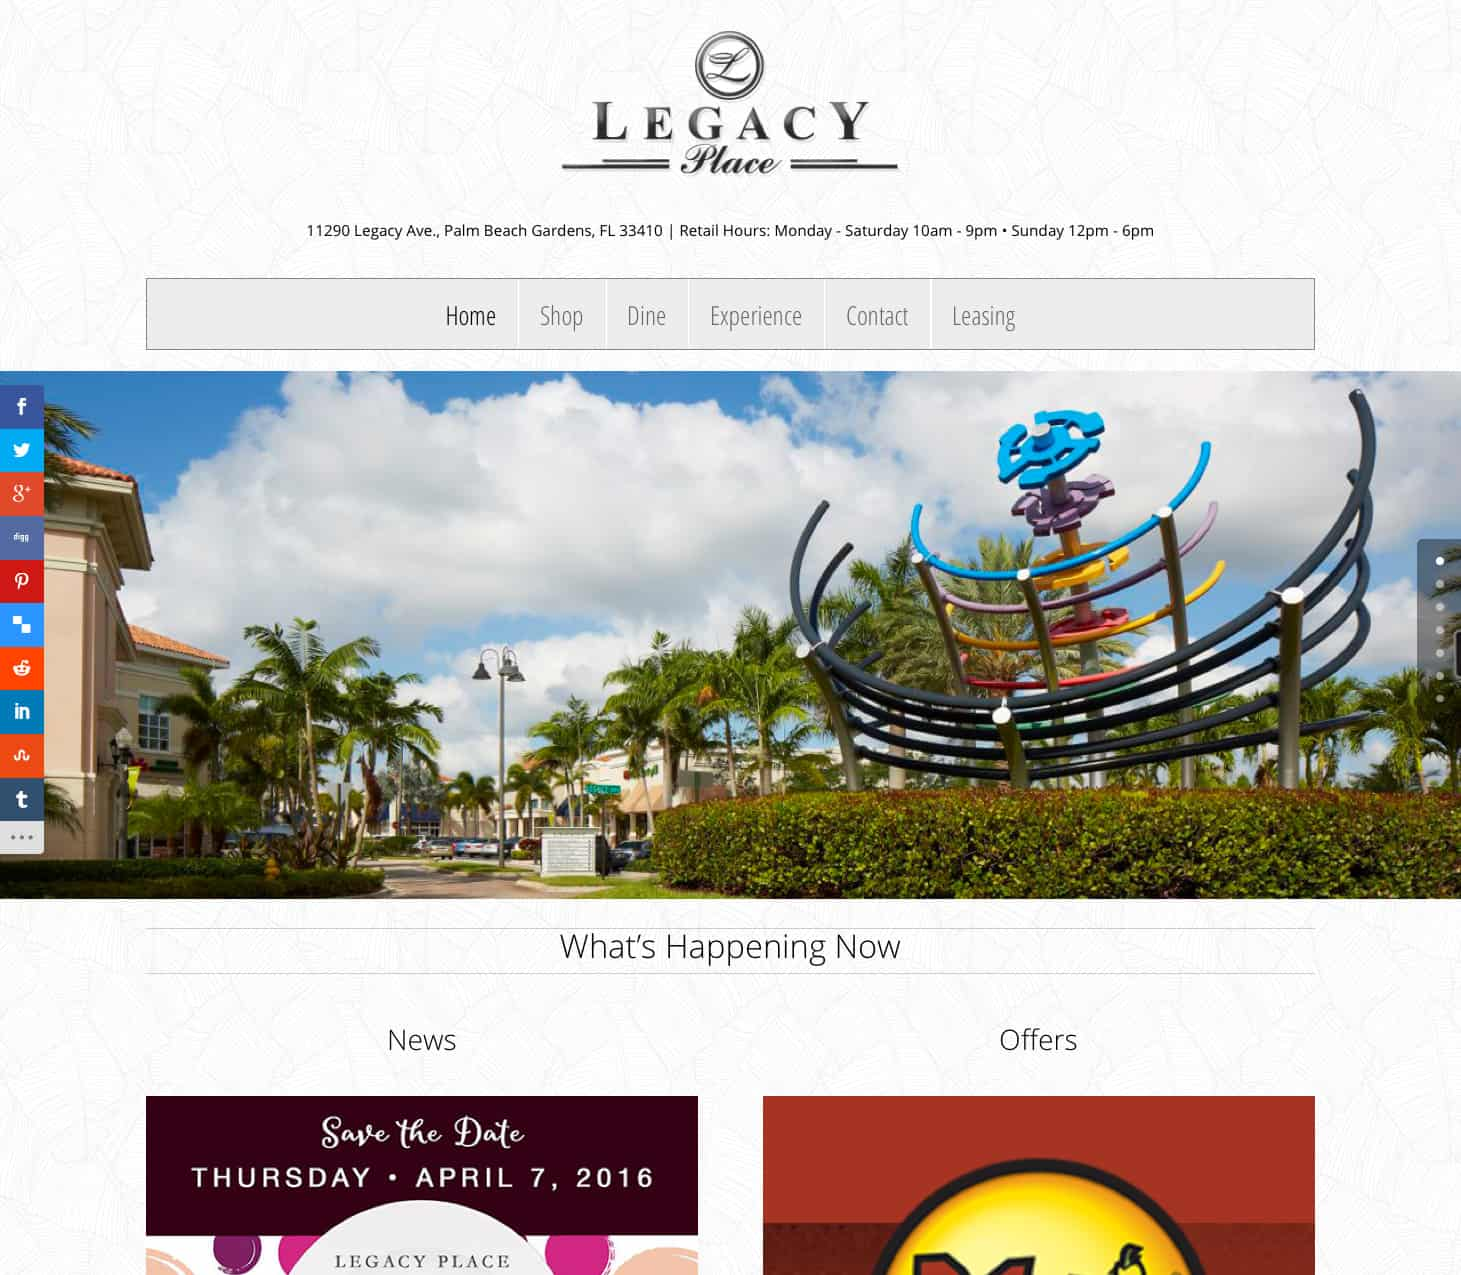 shoplegacyplace.com home page